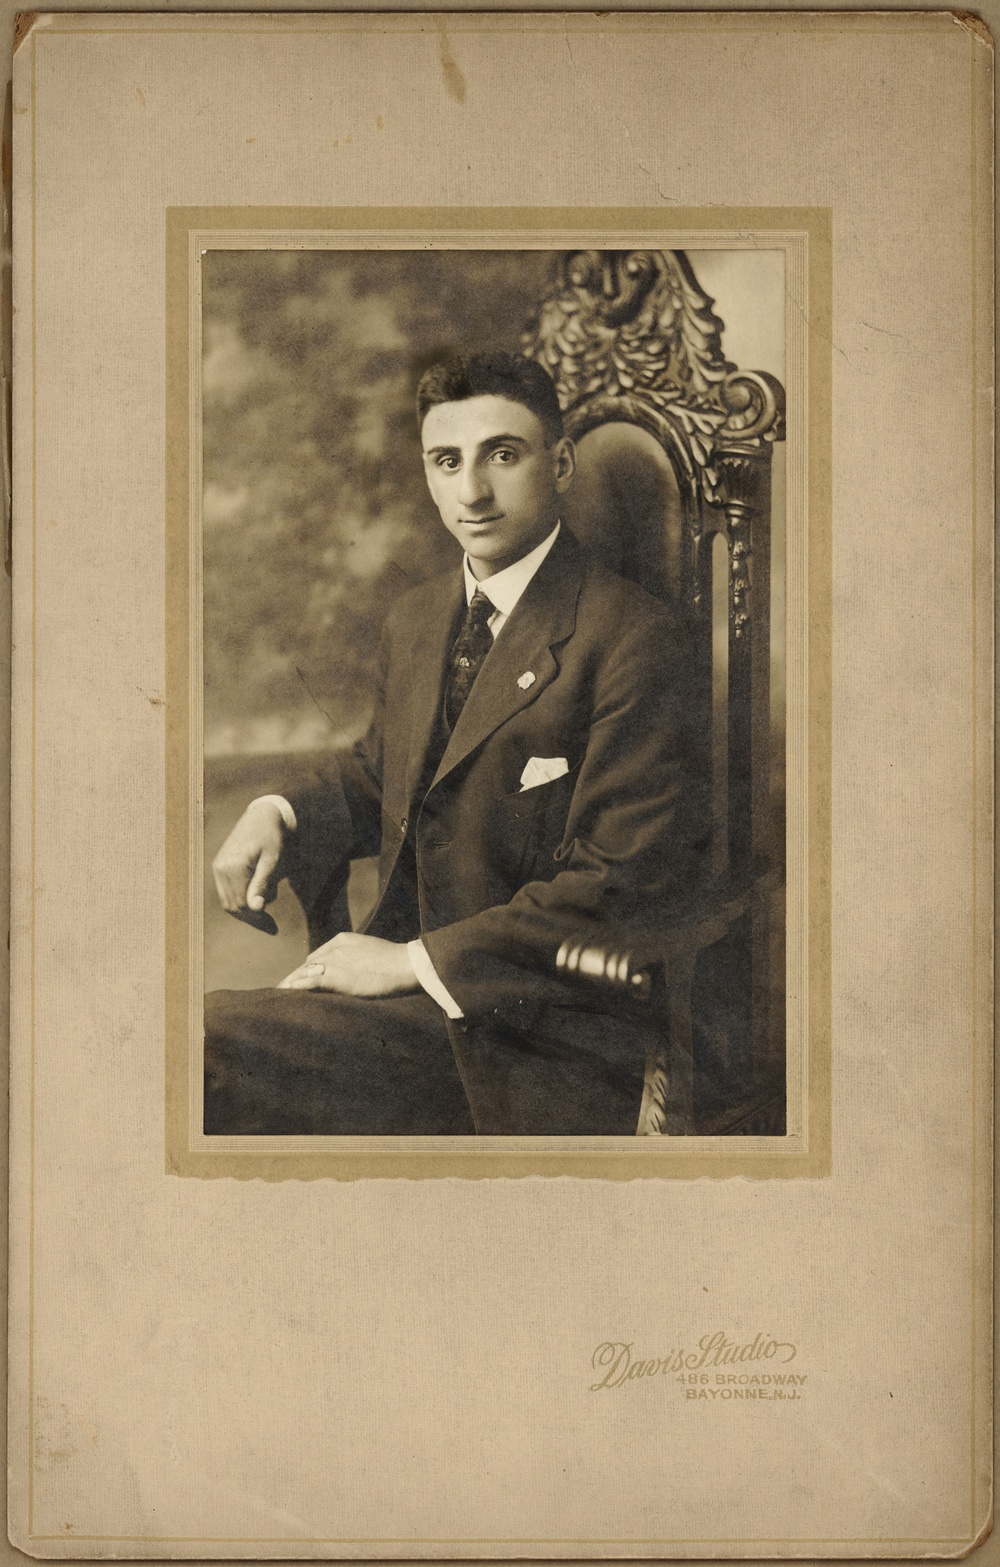 ~1907 New York City Joseph Acquiste [my great grandfather] as a young man.